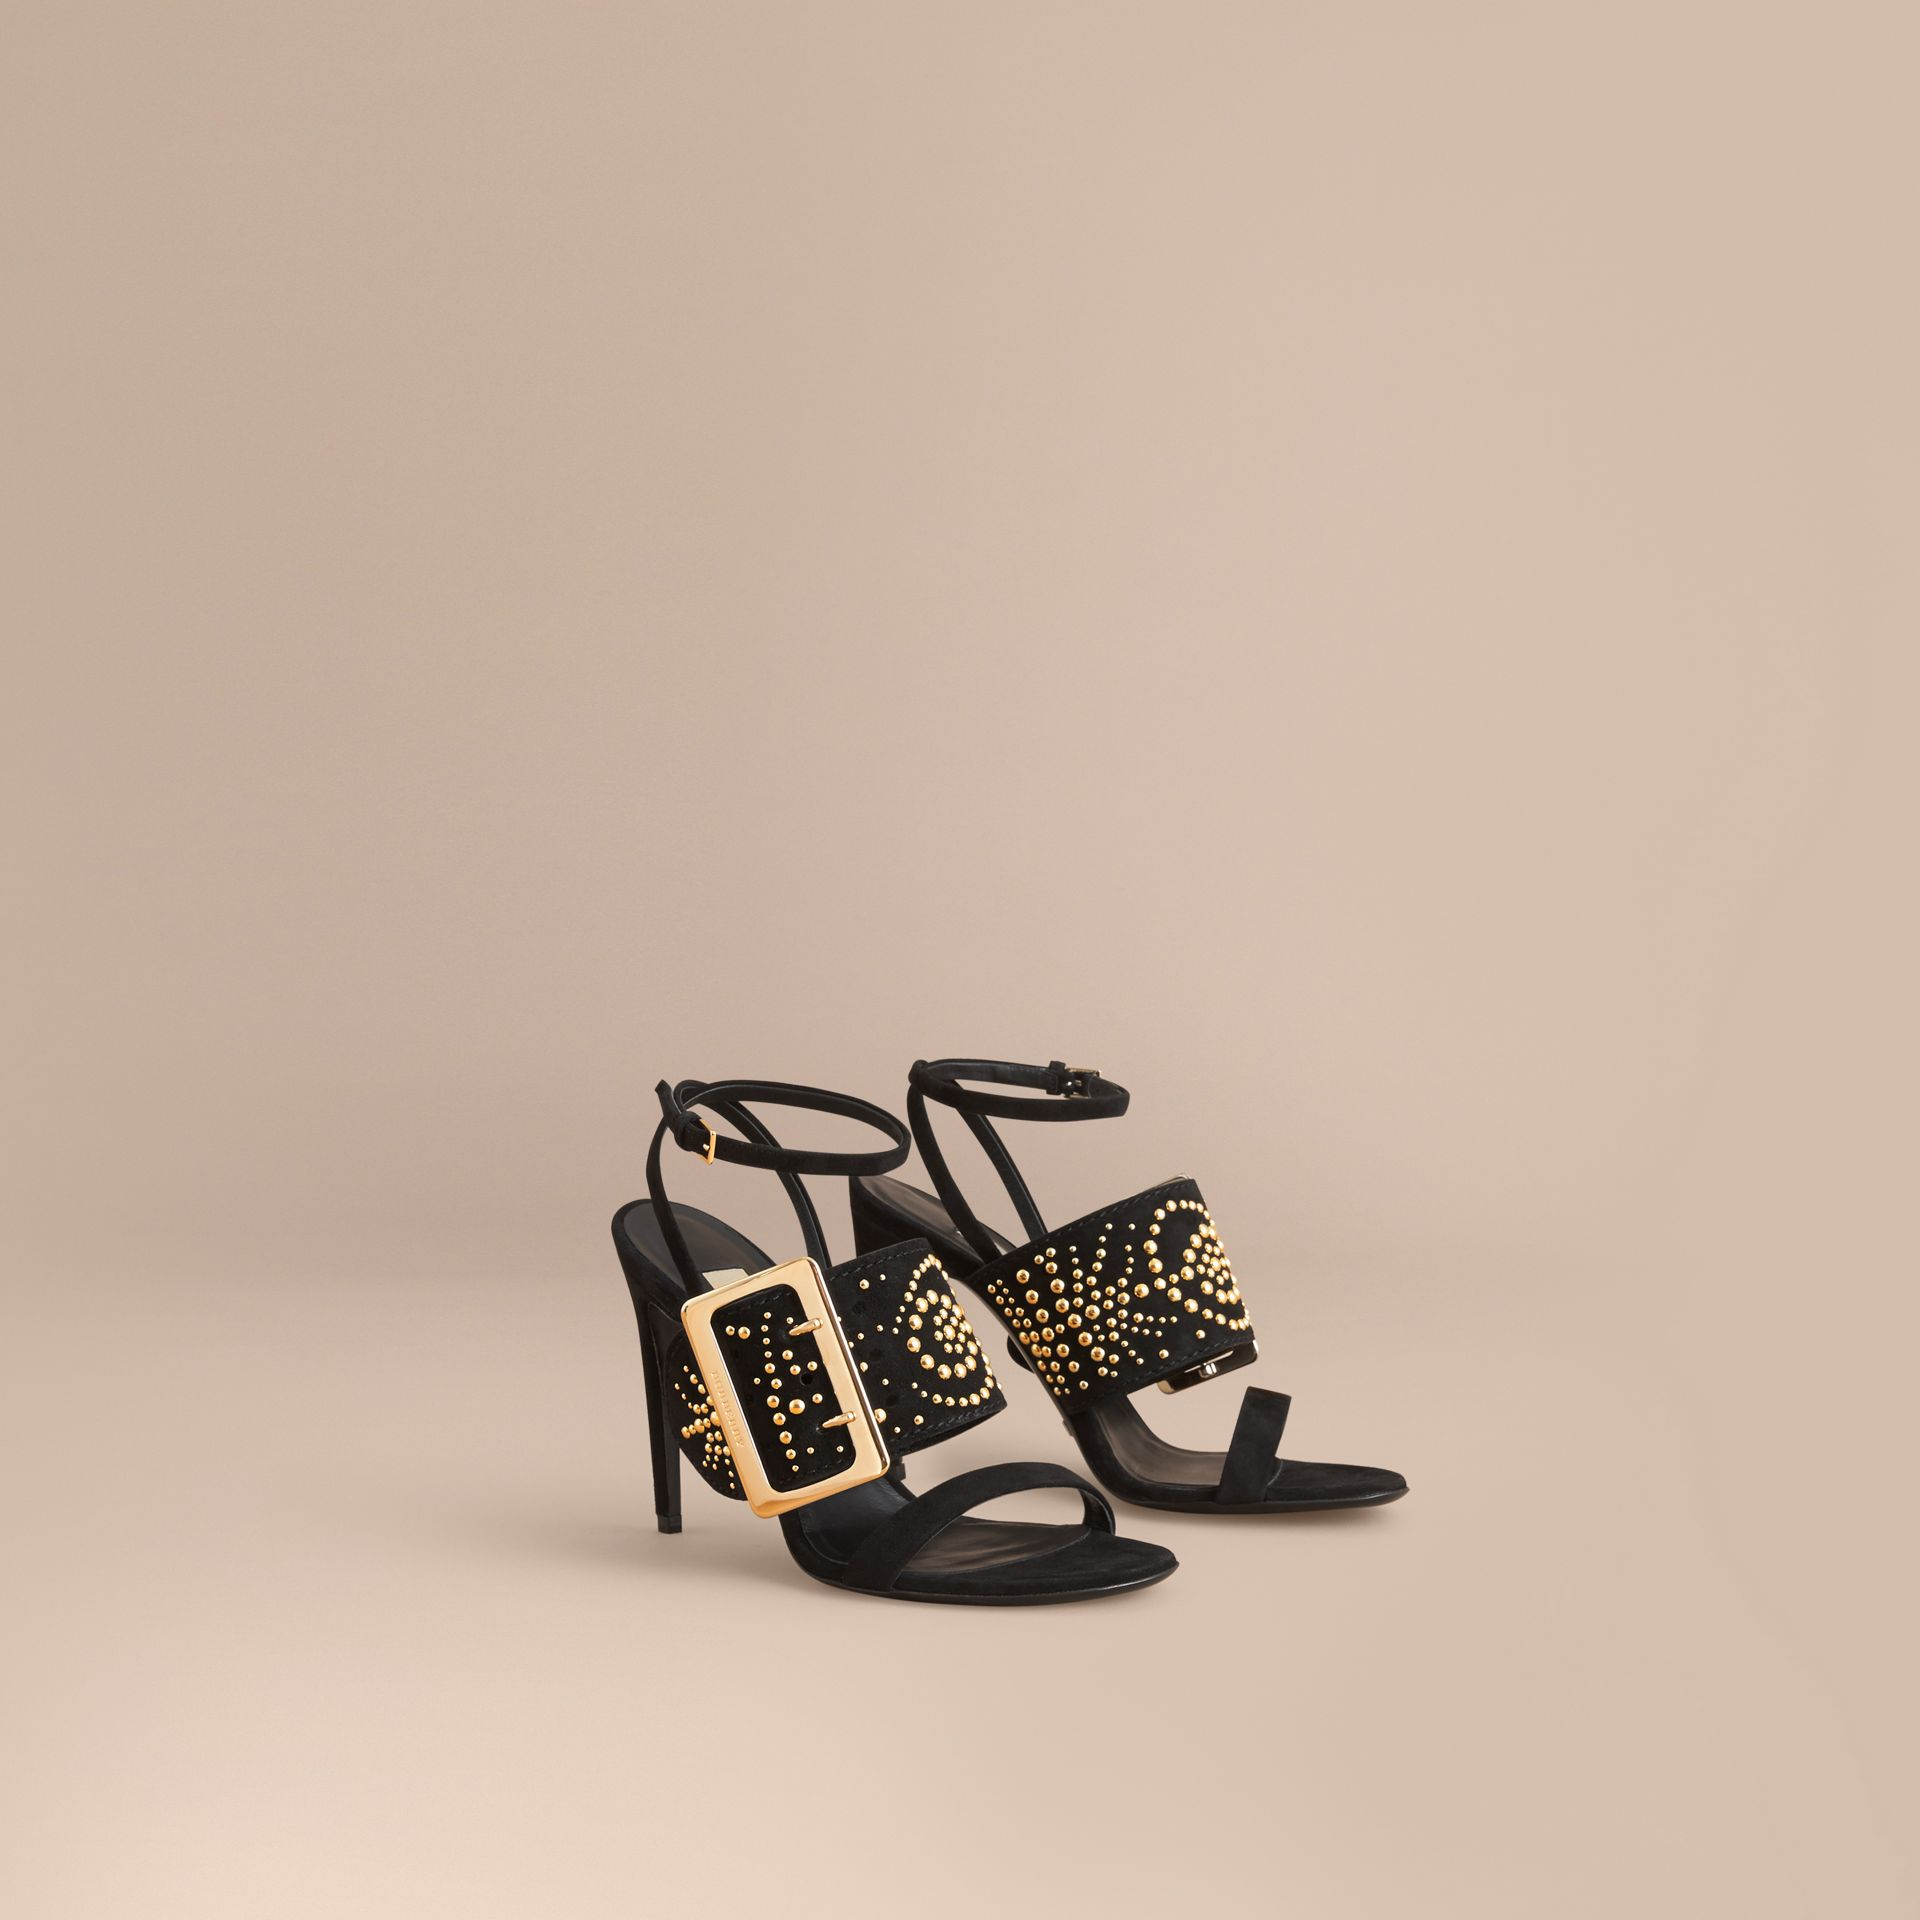 Riveted Suede Sandals with Buckle Detail in Black - Women | Burberry - gallery image 1